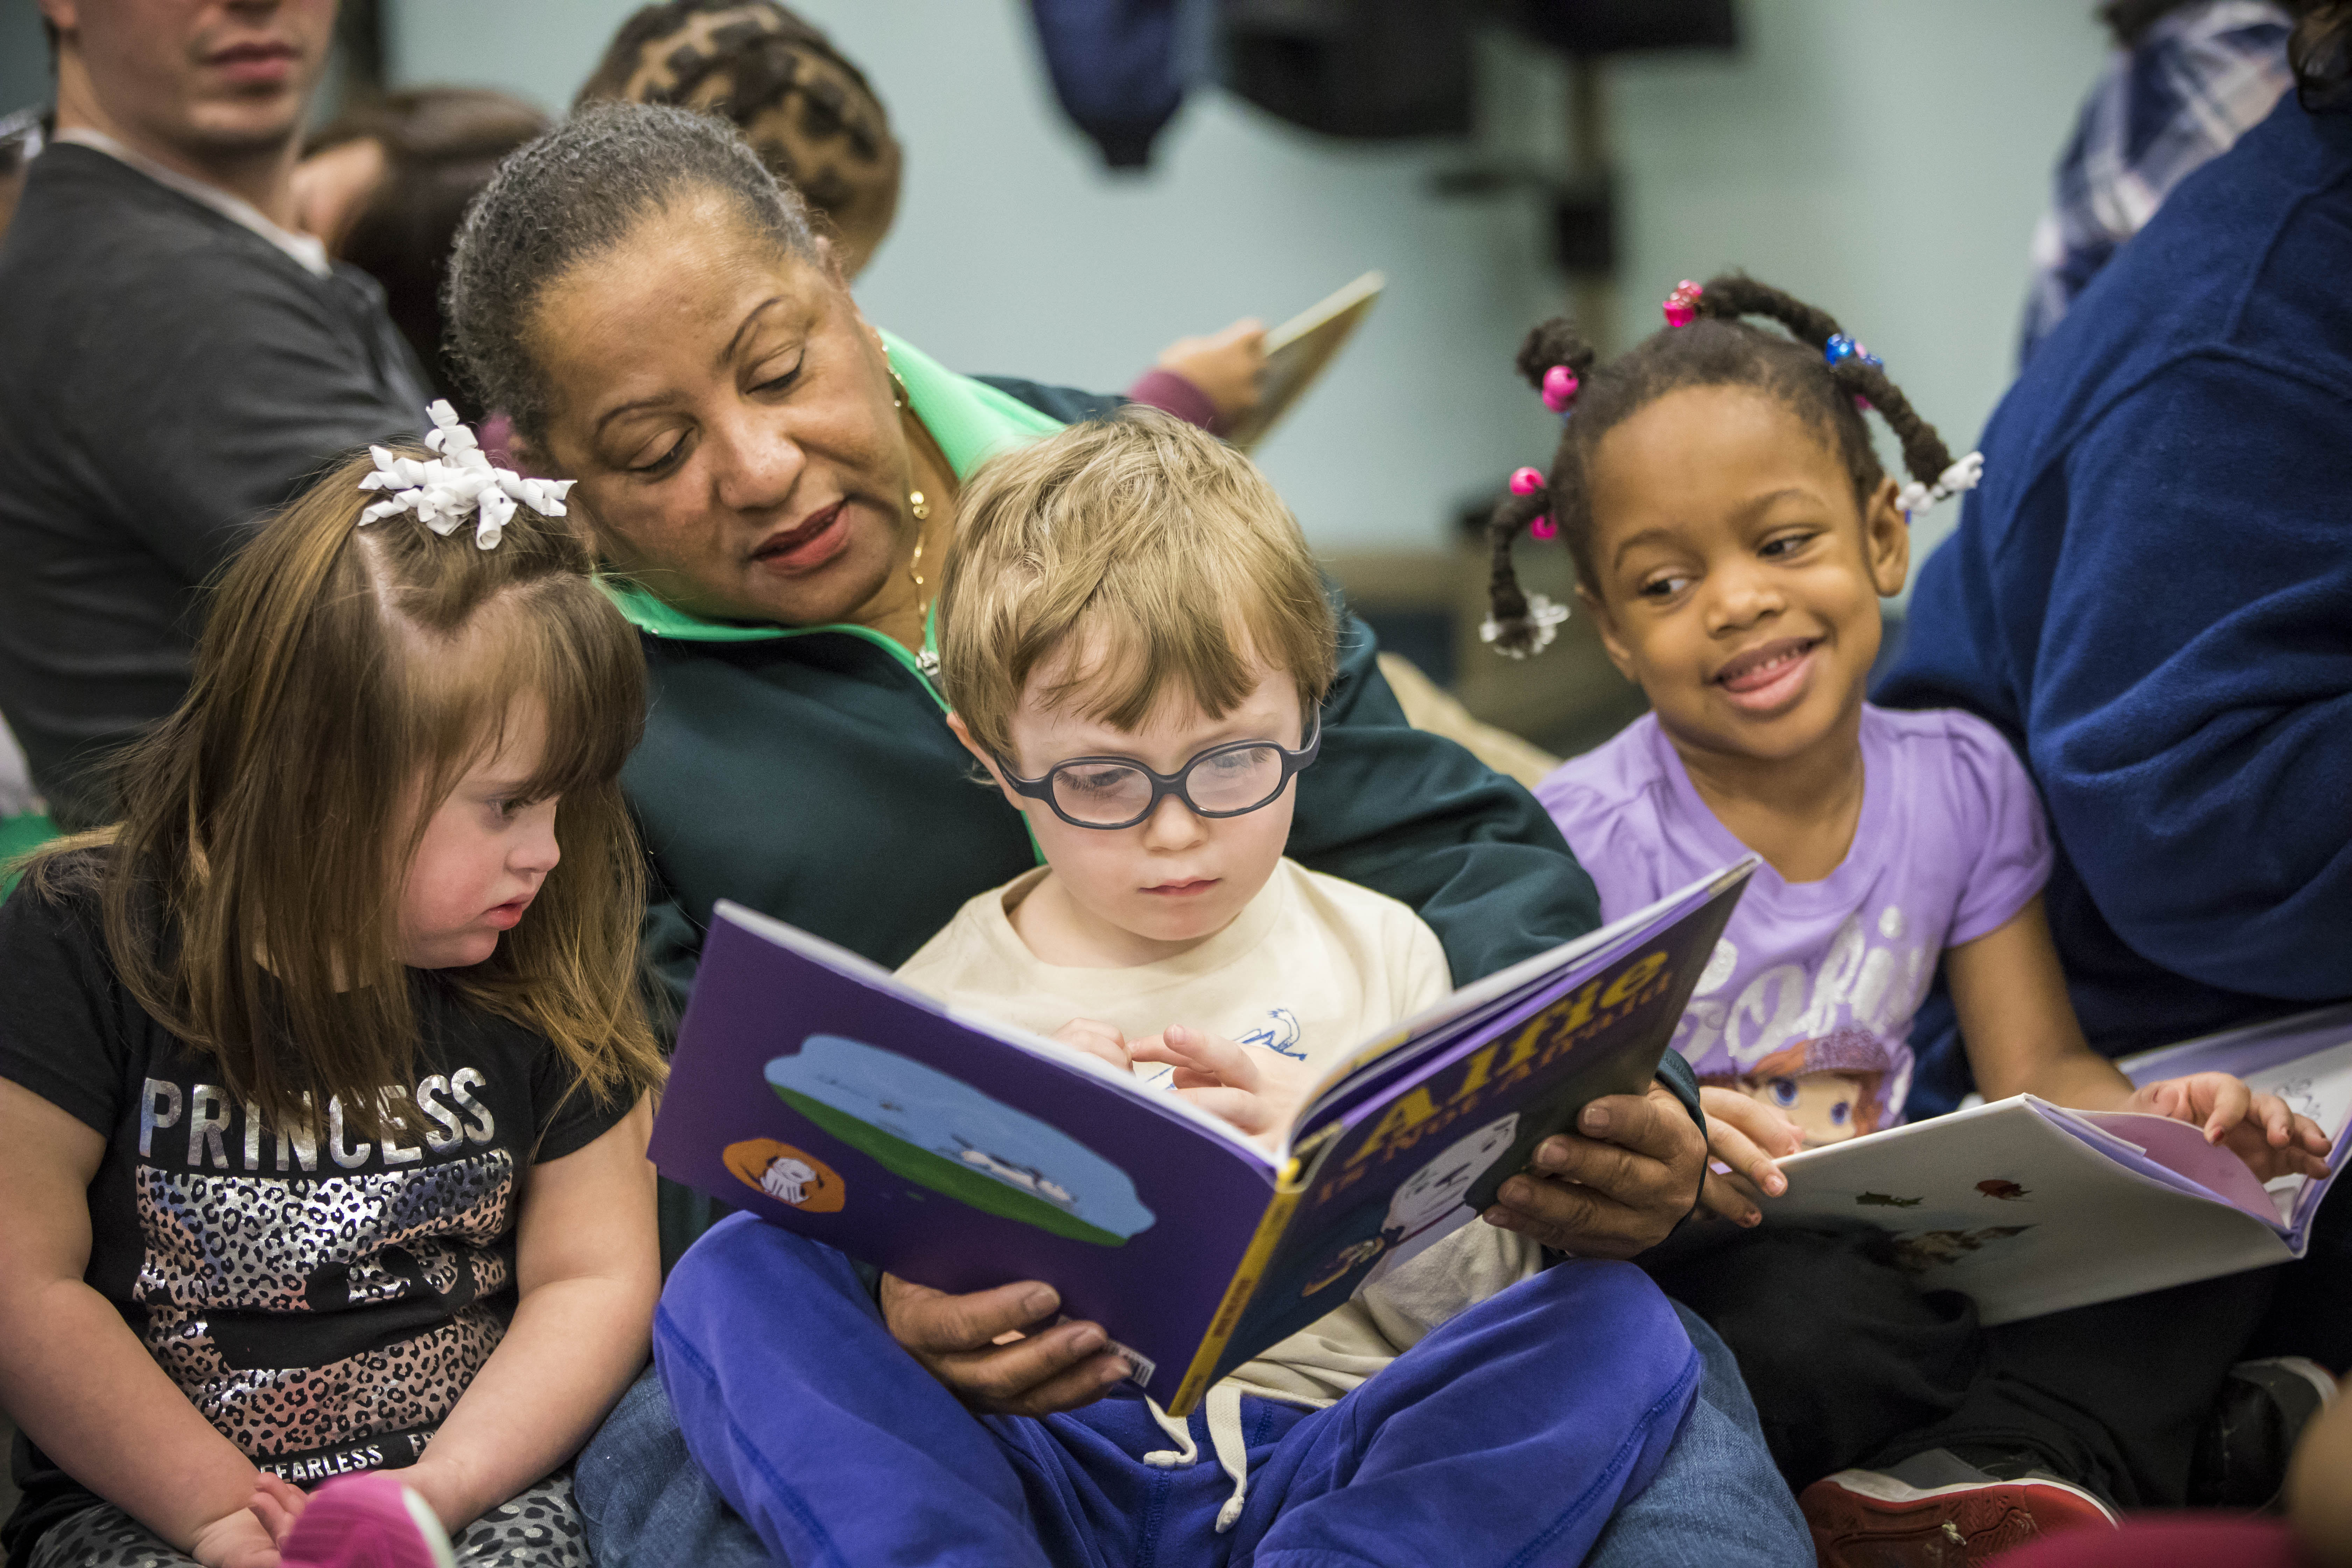 Personal aide Meota Jones reads to students, from left, Sofia Kotarski, Ethan Blair and Amil Marshall, all age 4, during the annual Books for Kids campaign kickoff at the Buffalo Hearing and Speech Center, Tuesday, April 4, 2017.  (Derek Gee/Buffalo News)